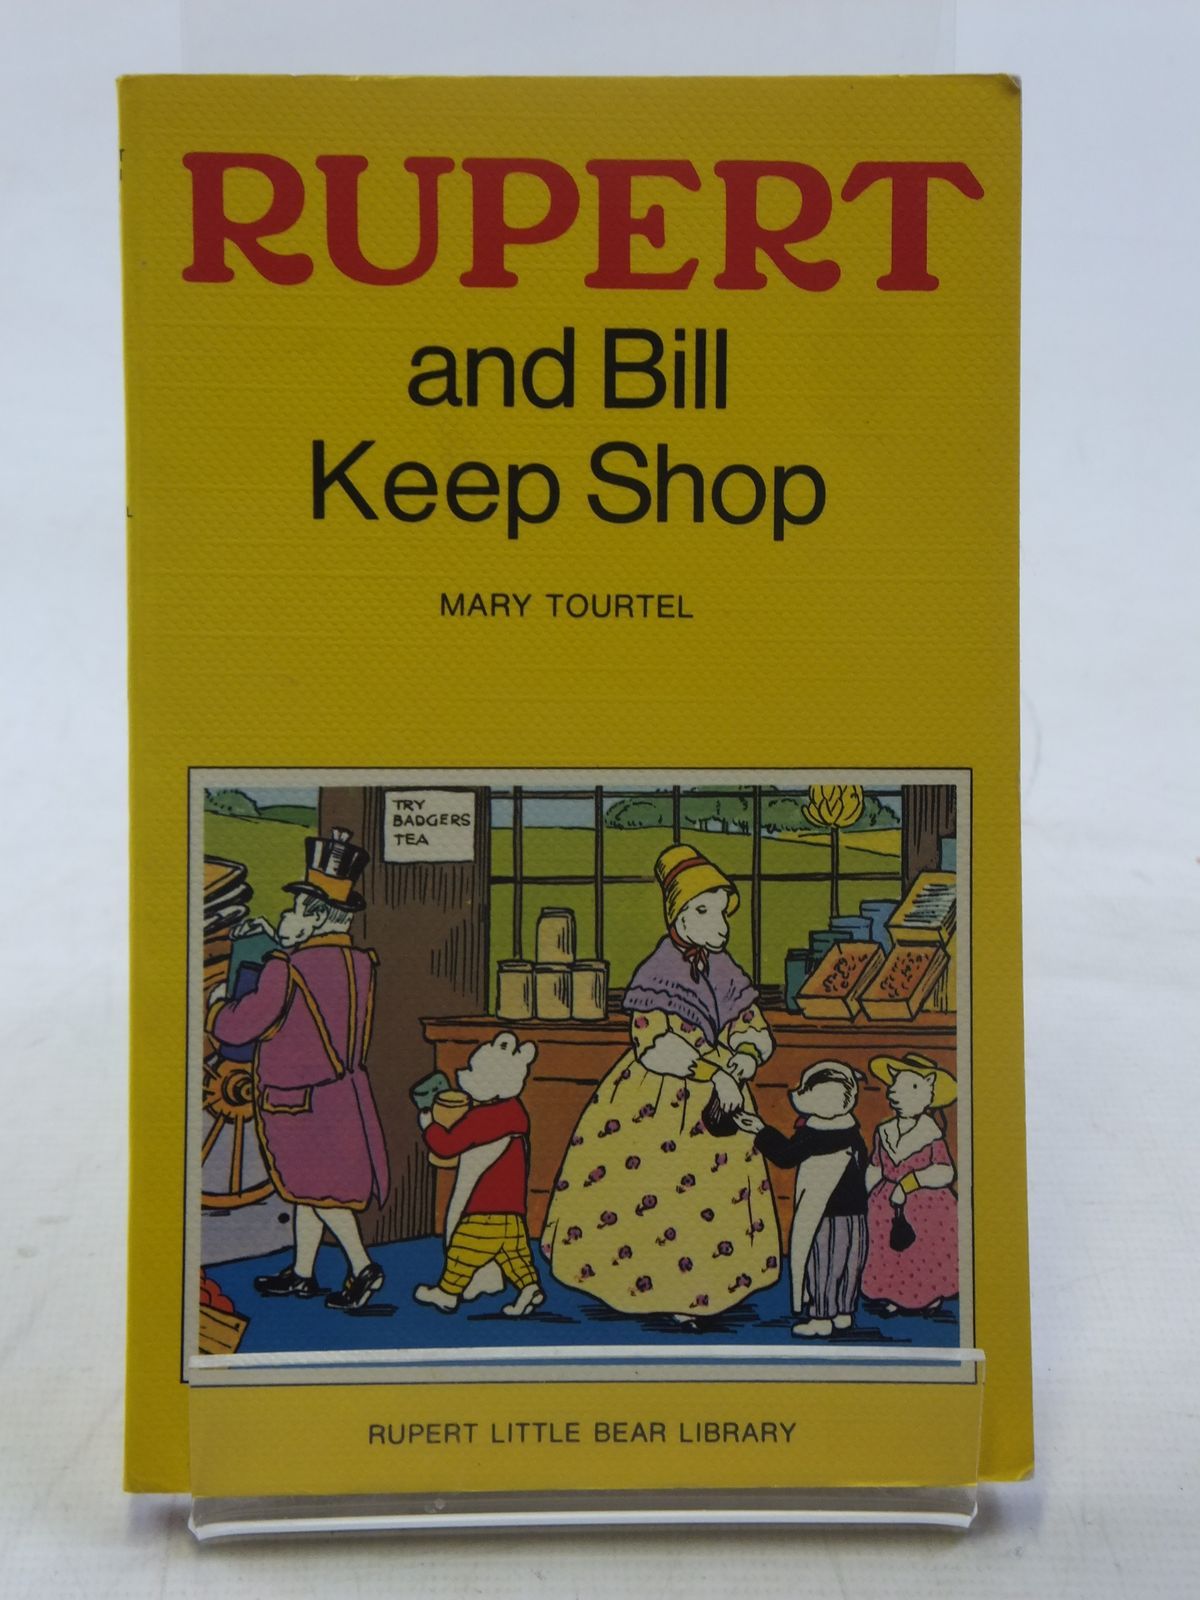 Photo of RUPERT AND BILL KEEP SHOP - RUPERT LITTLE BEAR LIBRARY No. 14 (WOOLWORTH) written by Tourtel, Mary illustrated by Tourtel, Mary published by Sampson Low, Marston & Co. Ltd. (STOCK CODE: 2117143)  for sale by Stella & Rose's Books